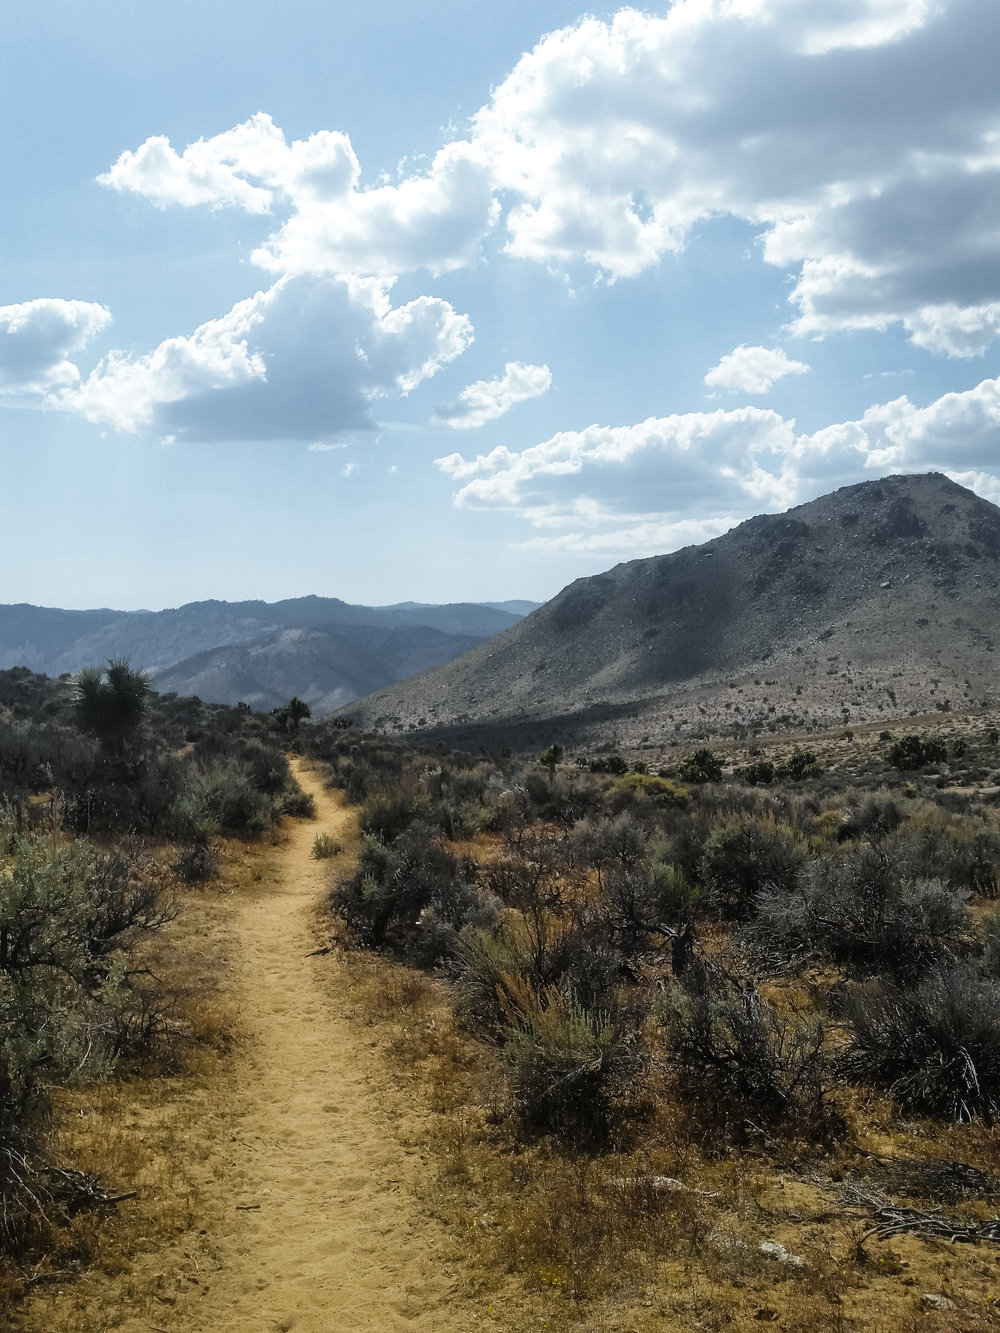 But before making it to the Sierra, the hottest and driest section